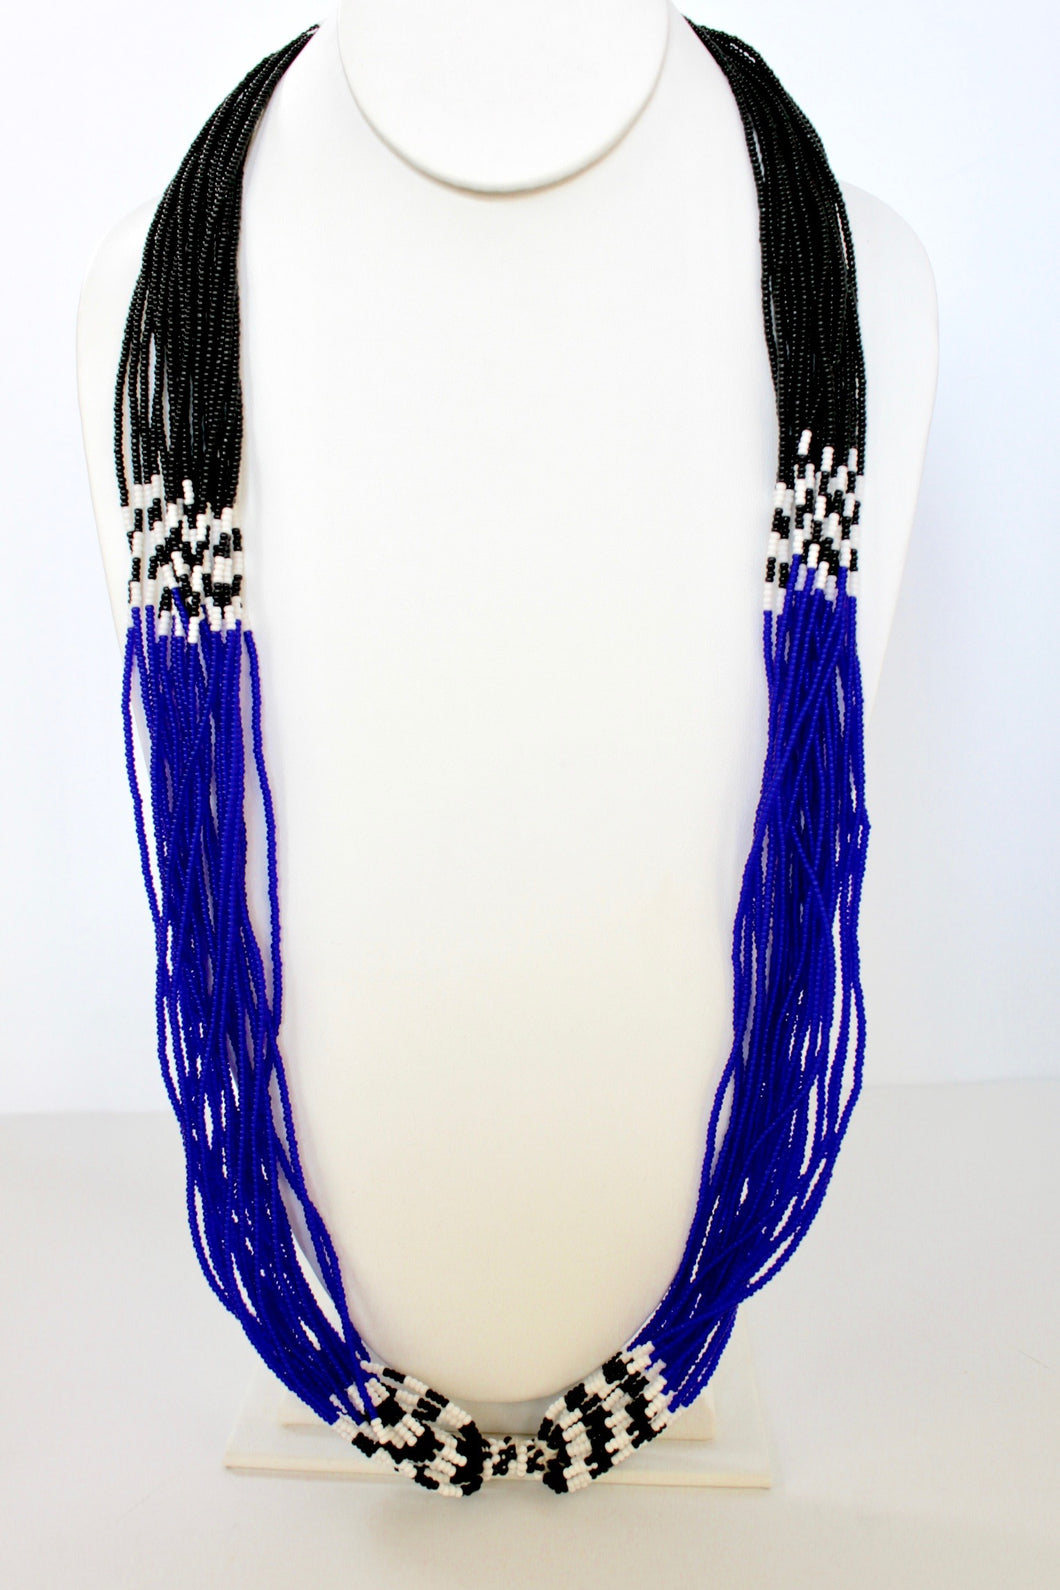 Mundari Twist Necklace - Cobalt Blue & Black